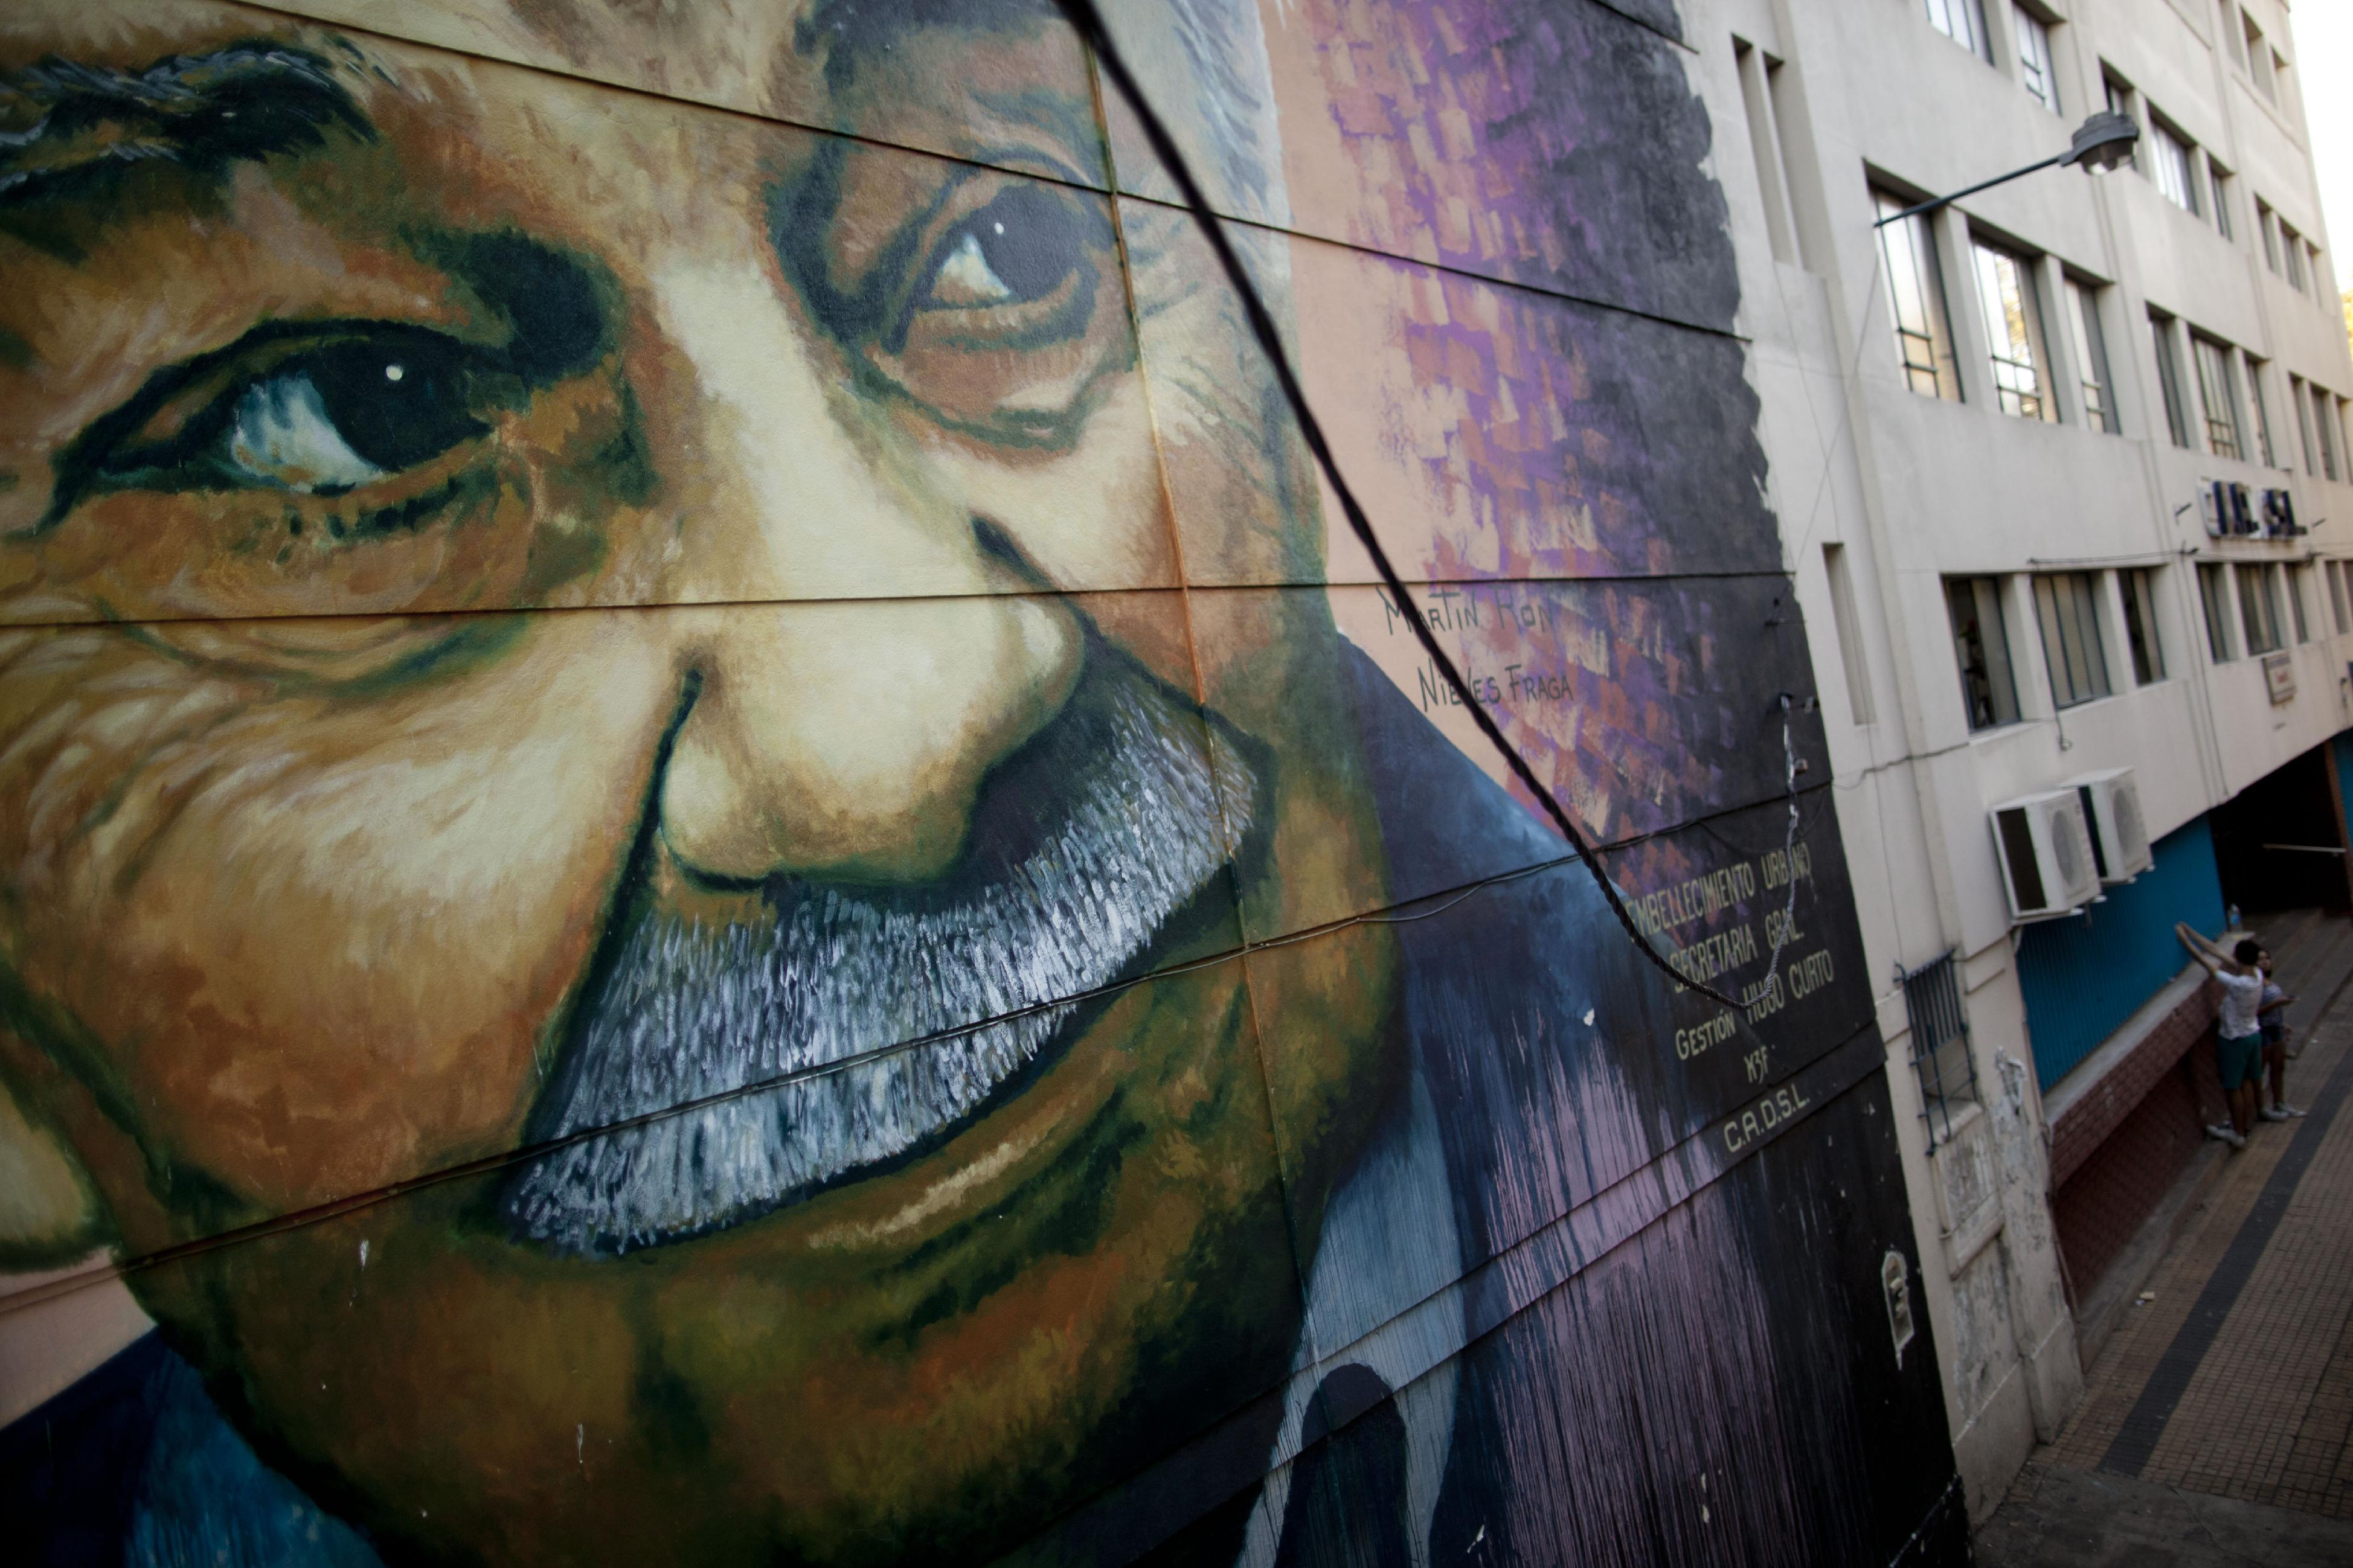 In this March 28, 2013 photo, a mural depicting Argentine writer Ernesto Sabato, created by artist Martin Ron, covers a building there Sabato once lived in Buenos Aires, Argentina. Local painters, including Argentine Martin Ron, take advantage of the relatively lax rules for street art, and they consider local vehicular and pedestrian traffic patterns before painting to get the best exposure for their work. (AP Photo/Natacha Pisarenko)